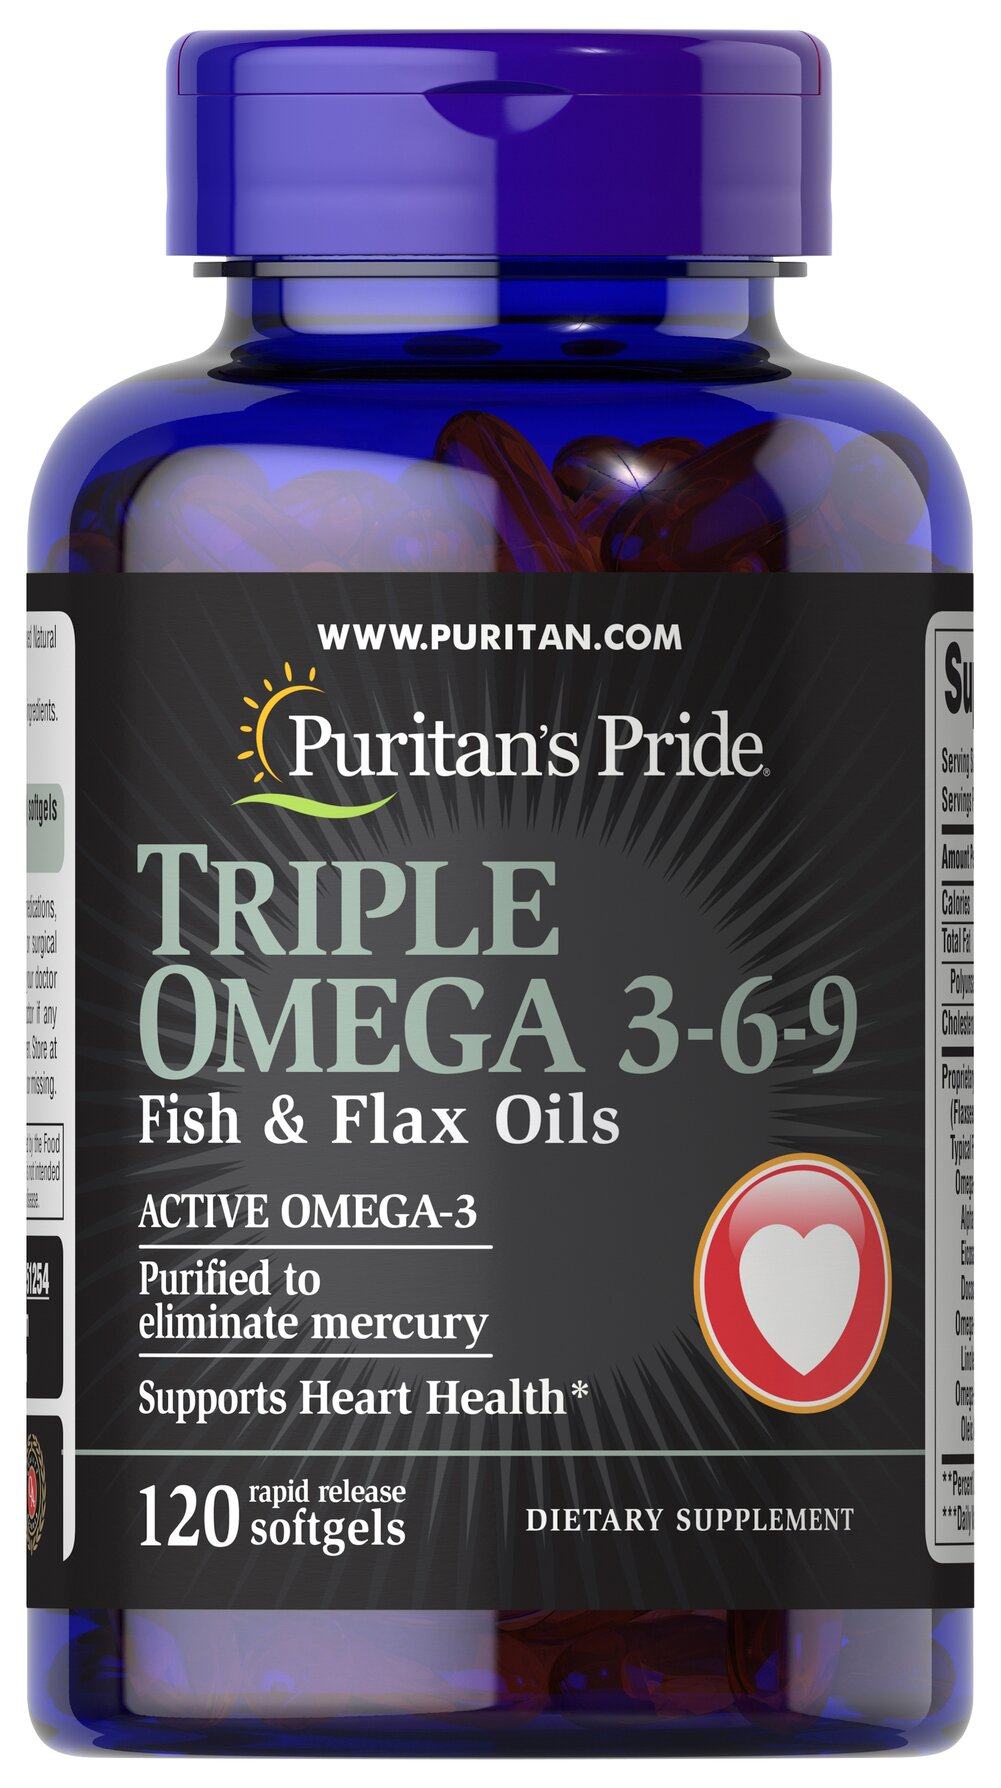 "Triple Omega 3-6-9 Fish & Flax Oils <p>Contains Omega-3, Omega-6 and Omega-9 – the ""good"" fats important for cellular, heart and metabolic health.**  </p><p>TRIPLE OMEGA 3-6-9 Fish and Flax Oils contain a proprietary blend of essential oils, including Flaxseed Oil and  Ester Omega Fish Oil. </p><p>Supports Heart Health.* </p><strong></strong><p>Purified to eliminate mercury.</p><p></p> 120 Softgels  $15.99"